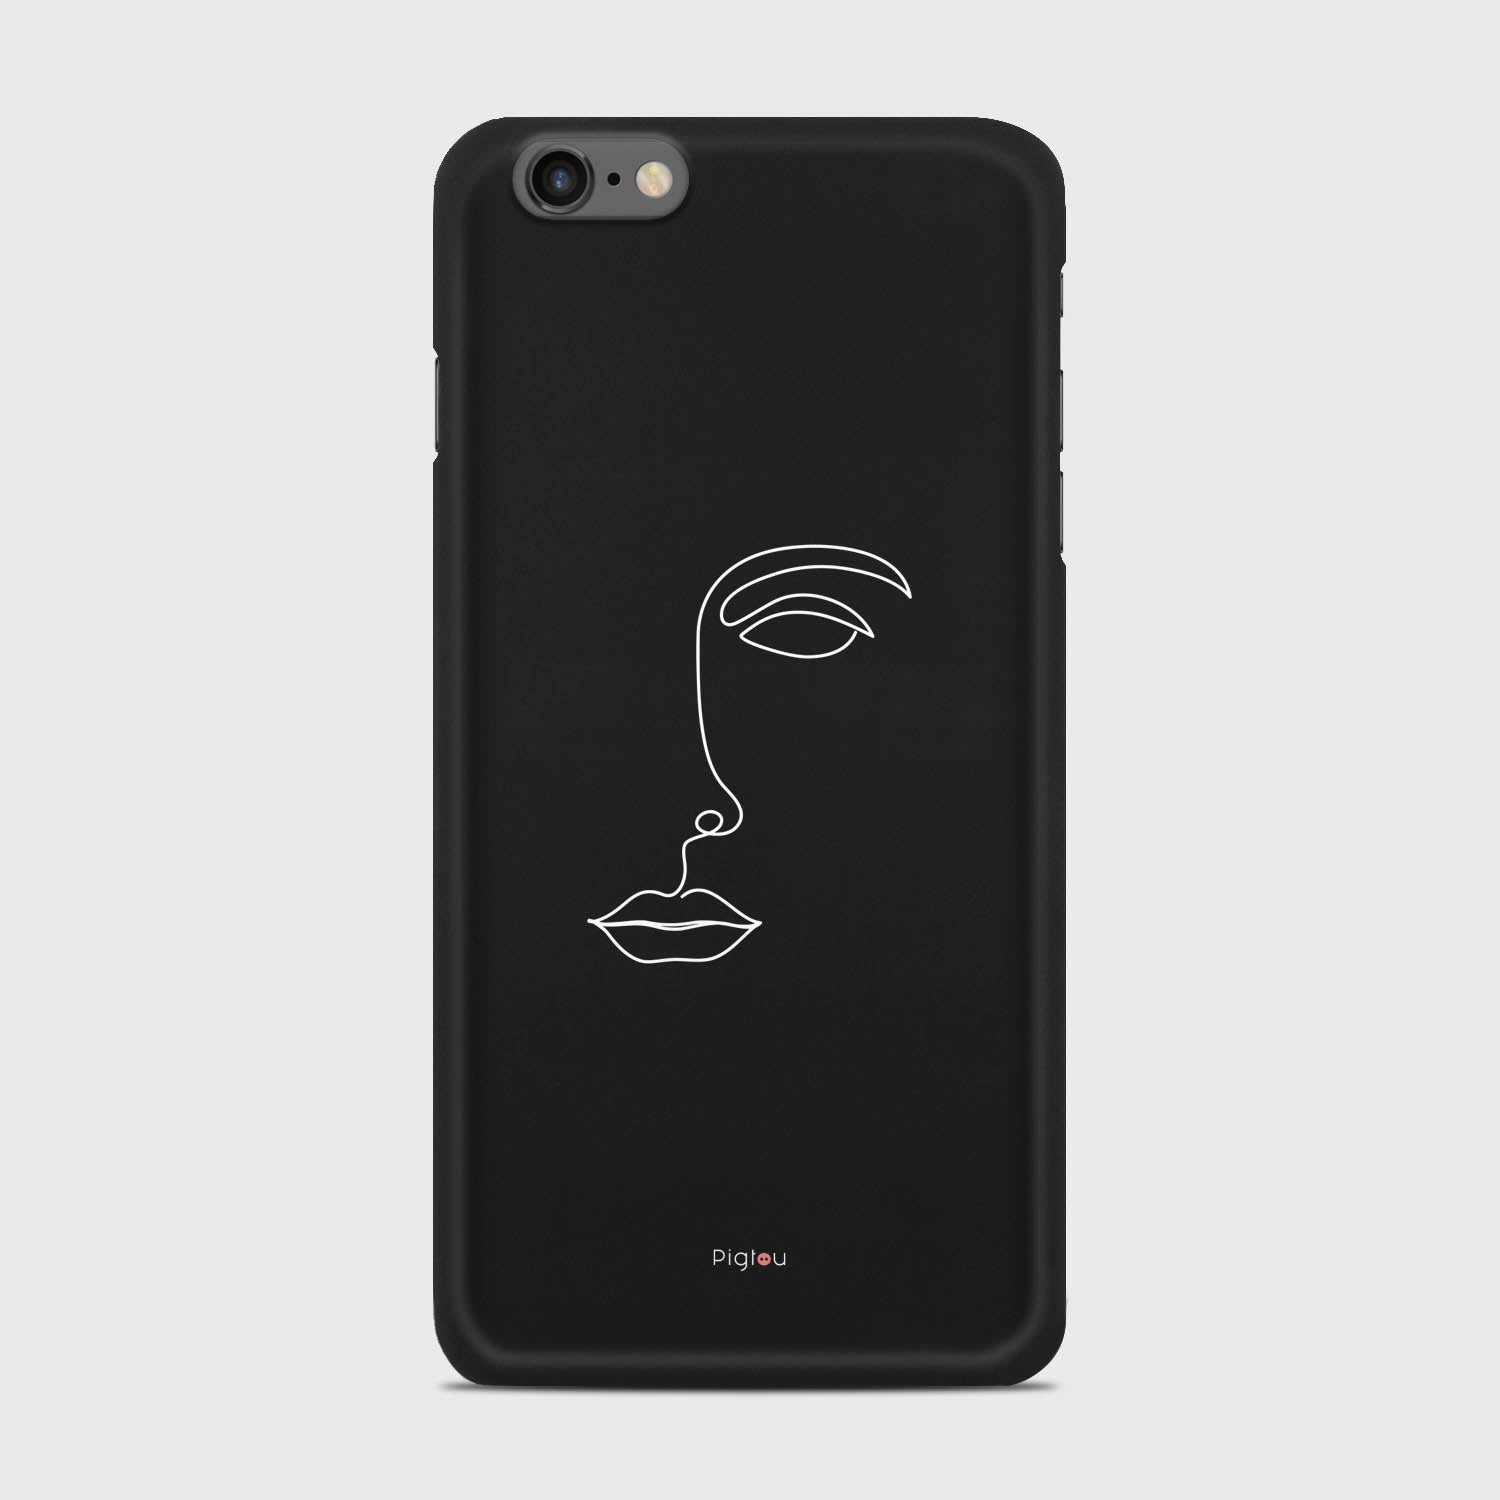 SILHOUETTE FACE iPhone 6s Plus cases | Pigtou